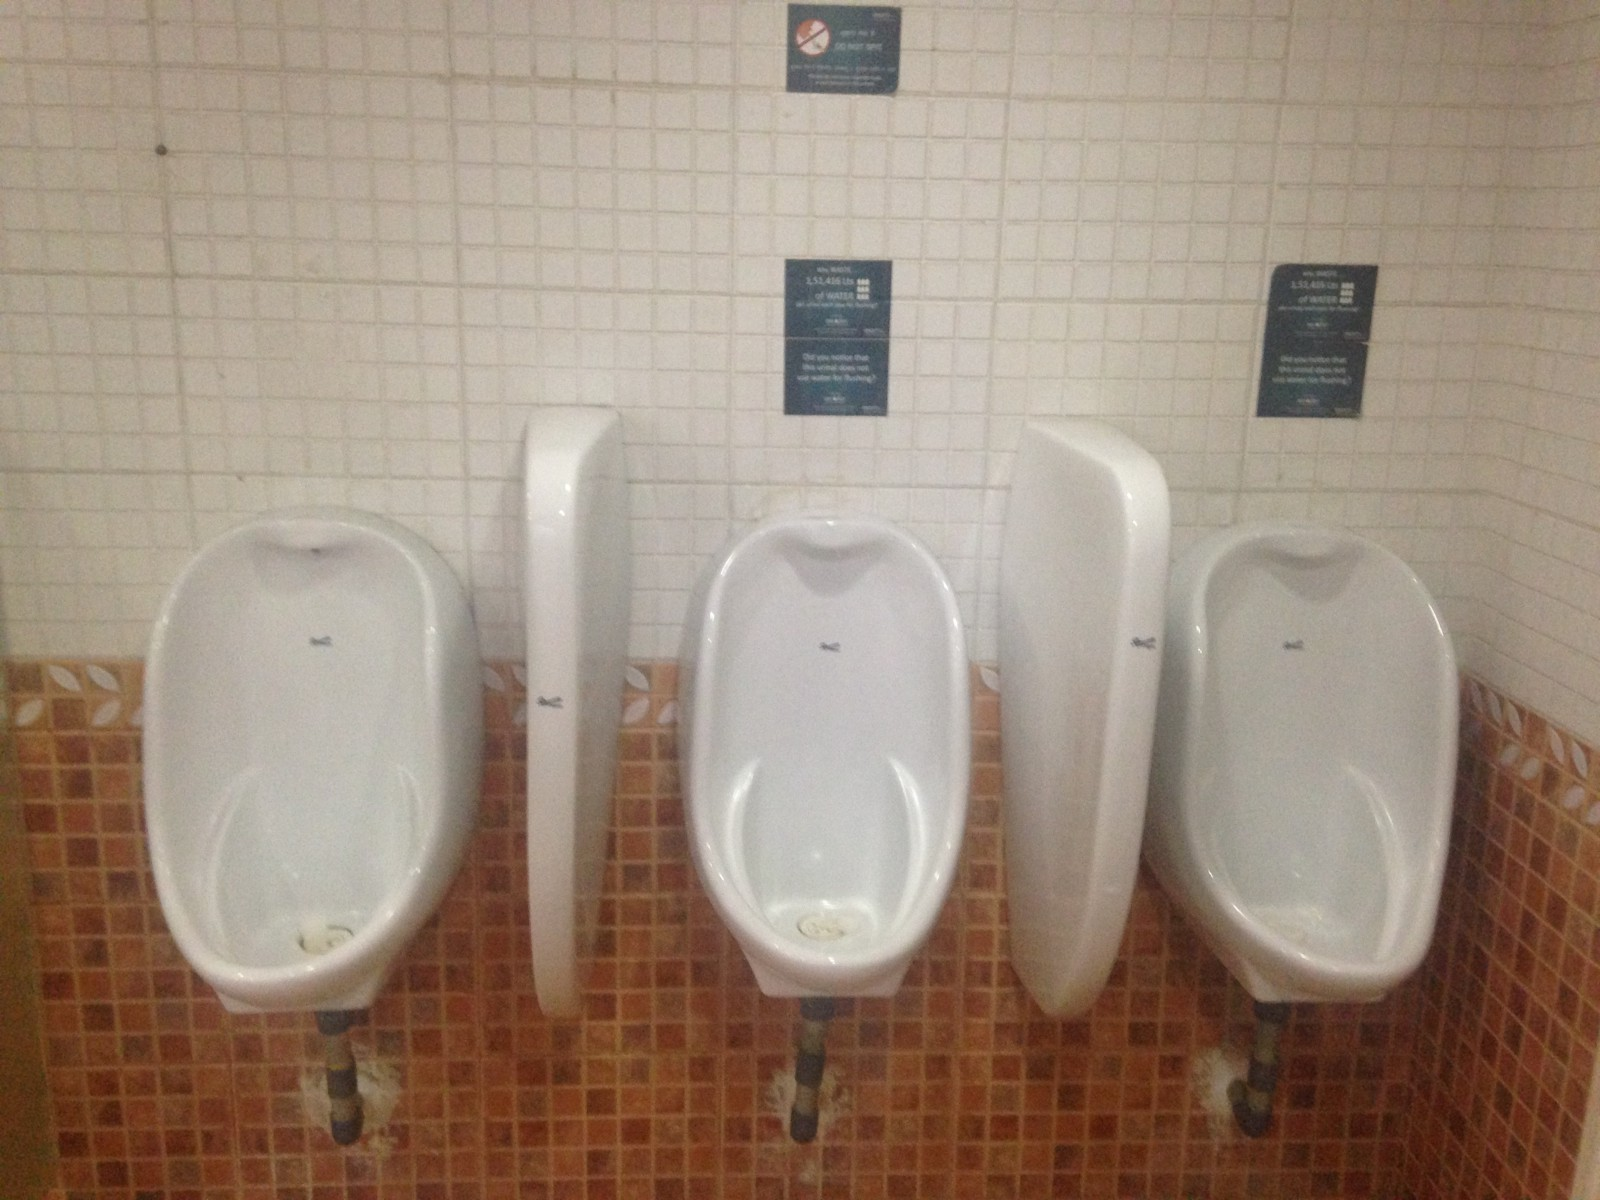 Why Are All Offices Not Using Water Less Urinals Yet